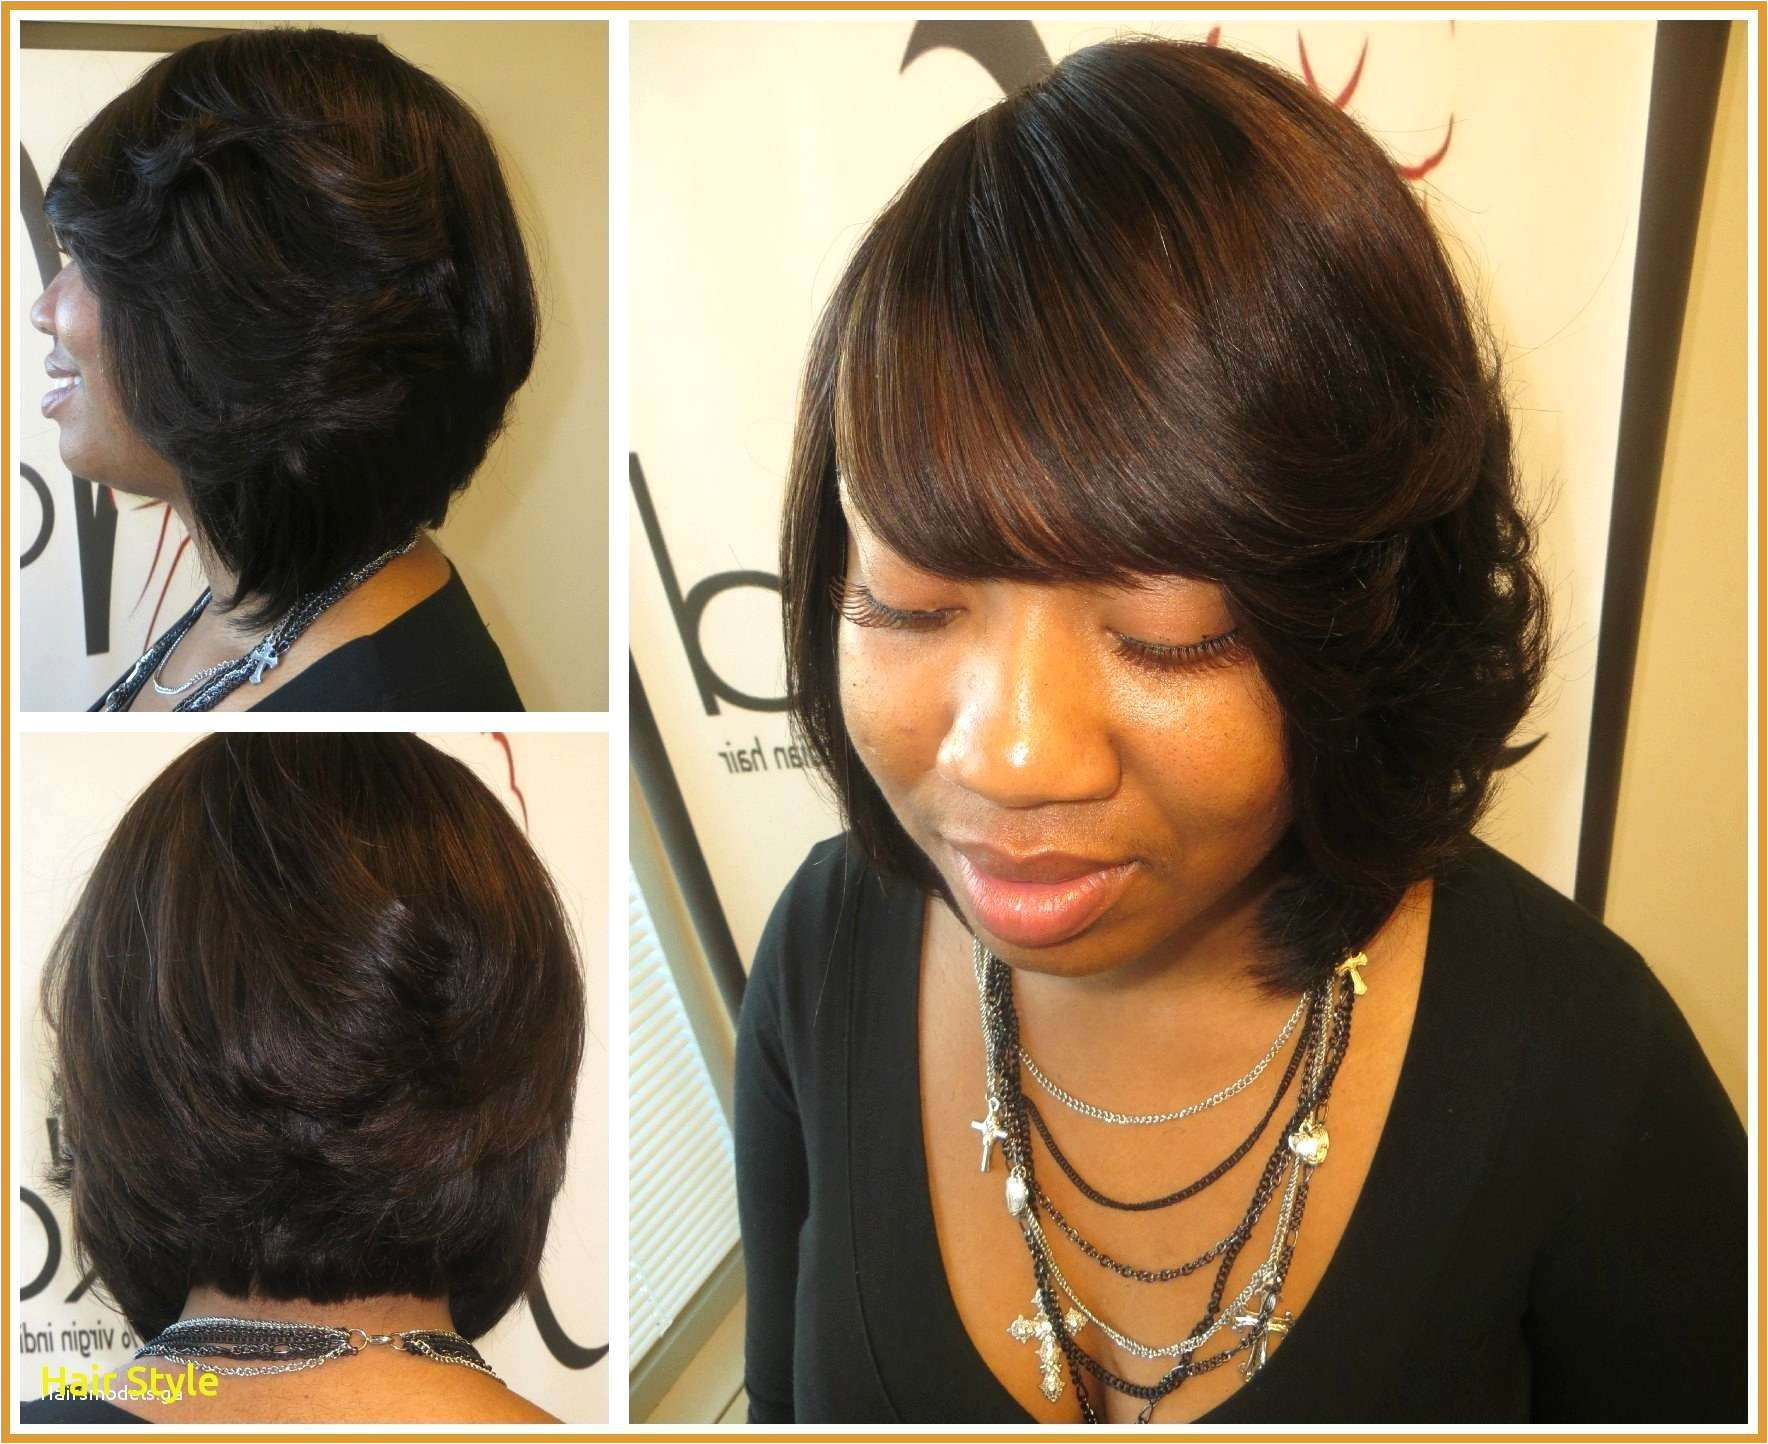 Black Girls Short Hairstyles Lovely Awesome Hairstyles for Little Girls with Short Hair Hardeeplive Black